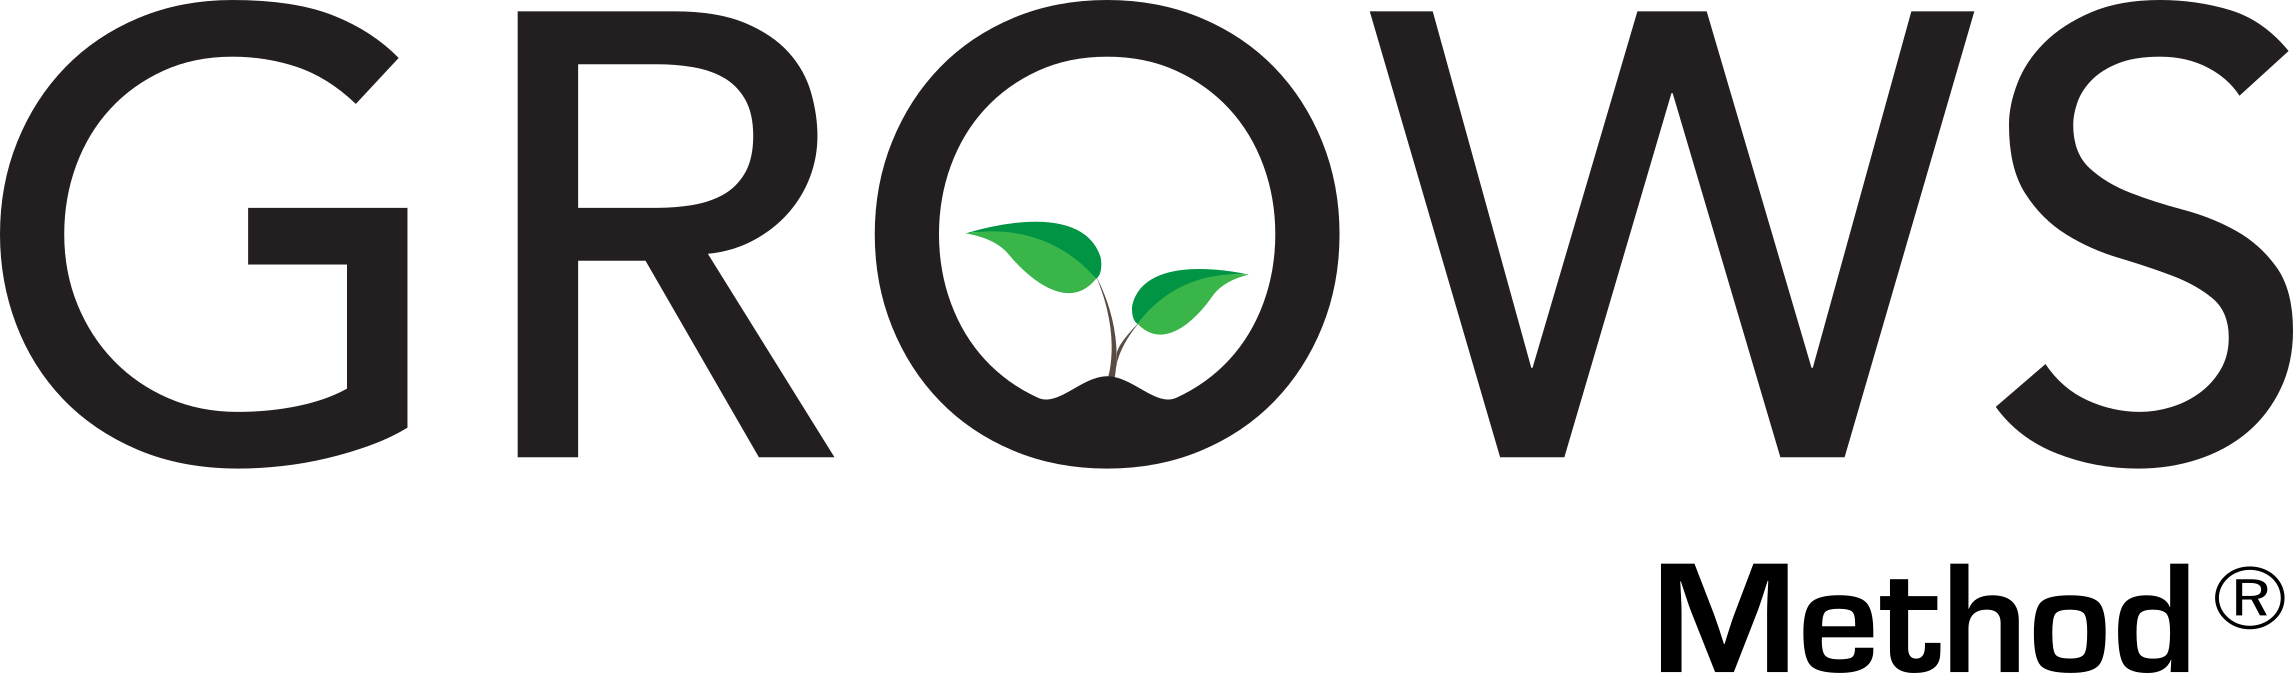 GROWS logo